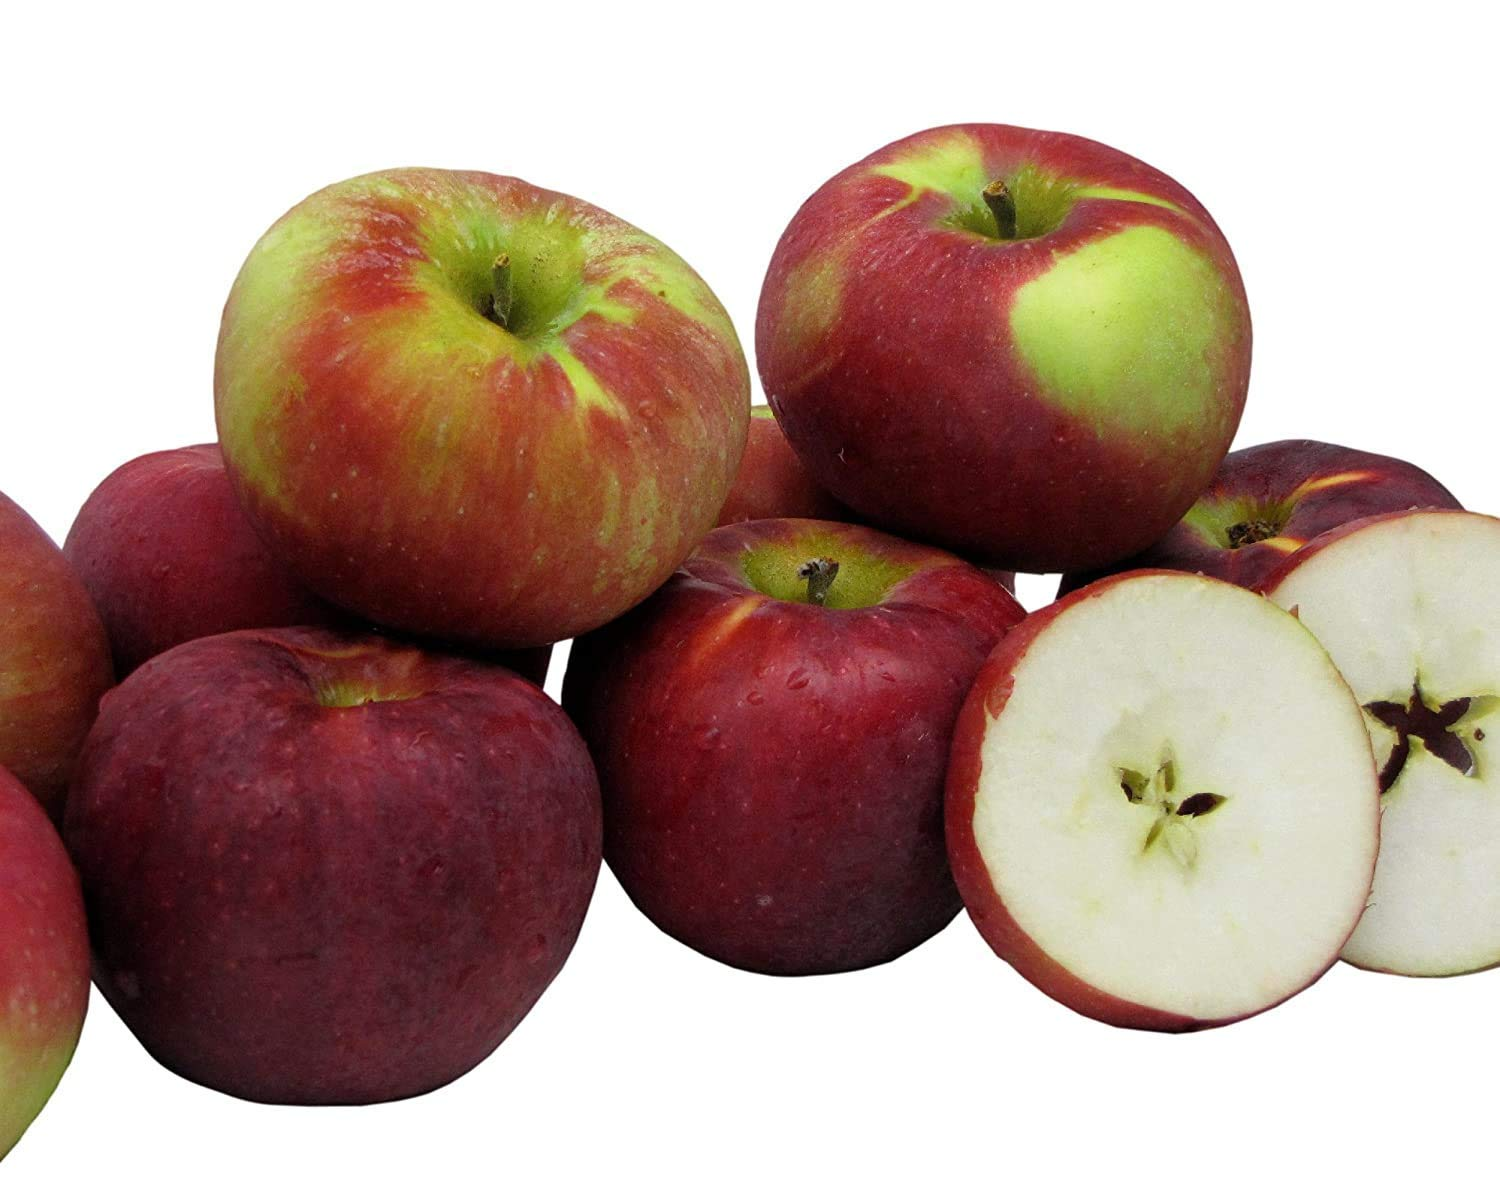 Kauffman Orchards Cortland Apples, Fresh-Picked and Sun-Ripened (Box of 8)